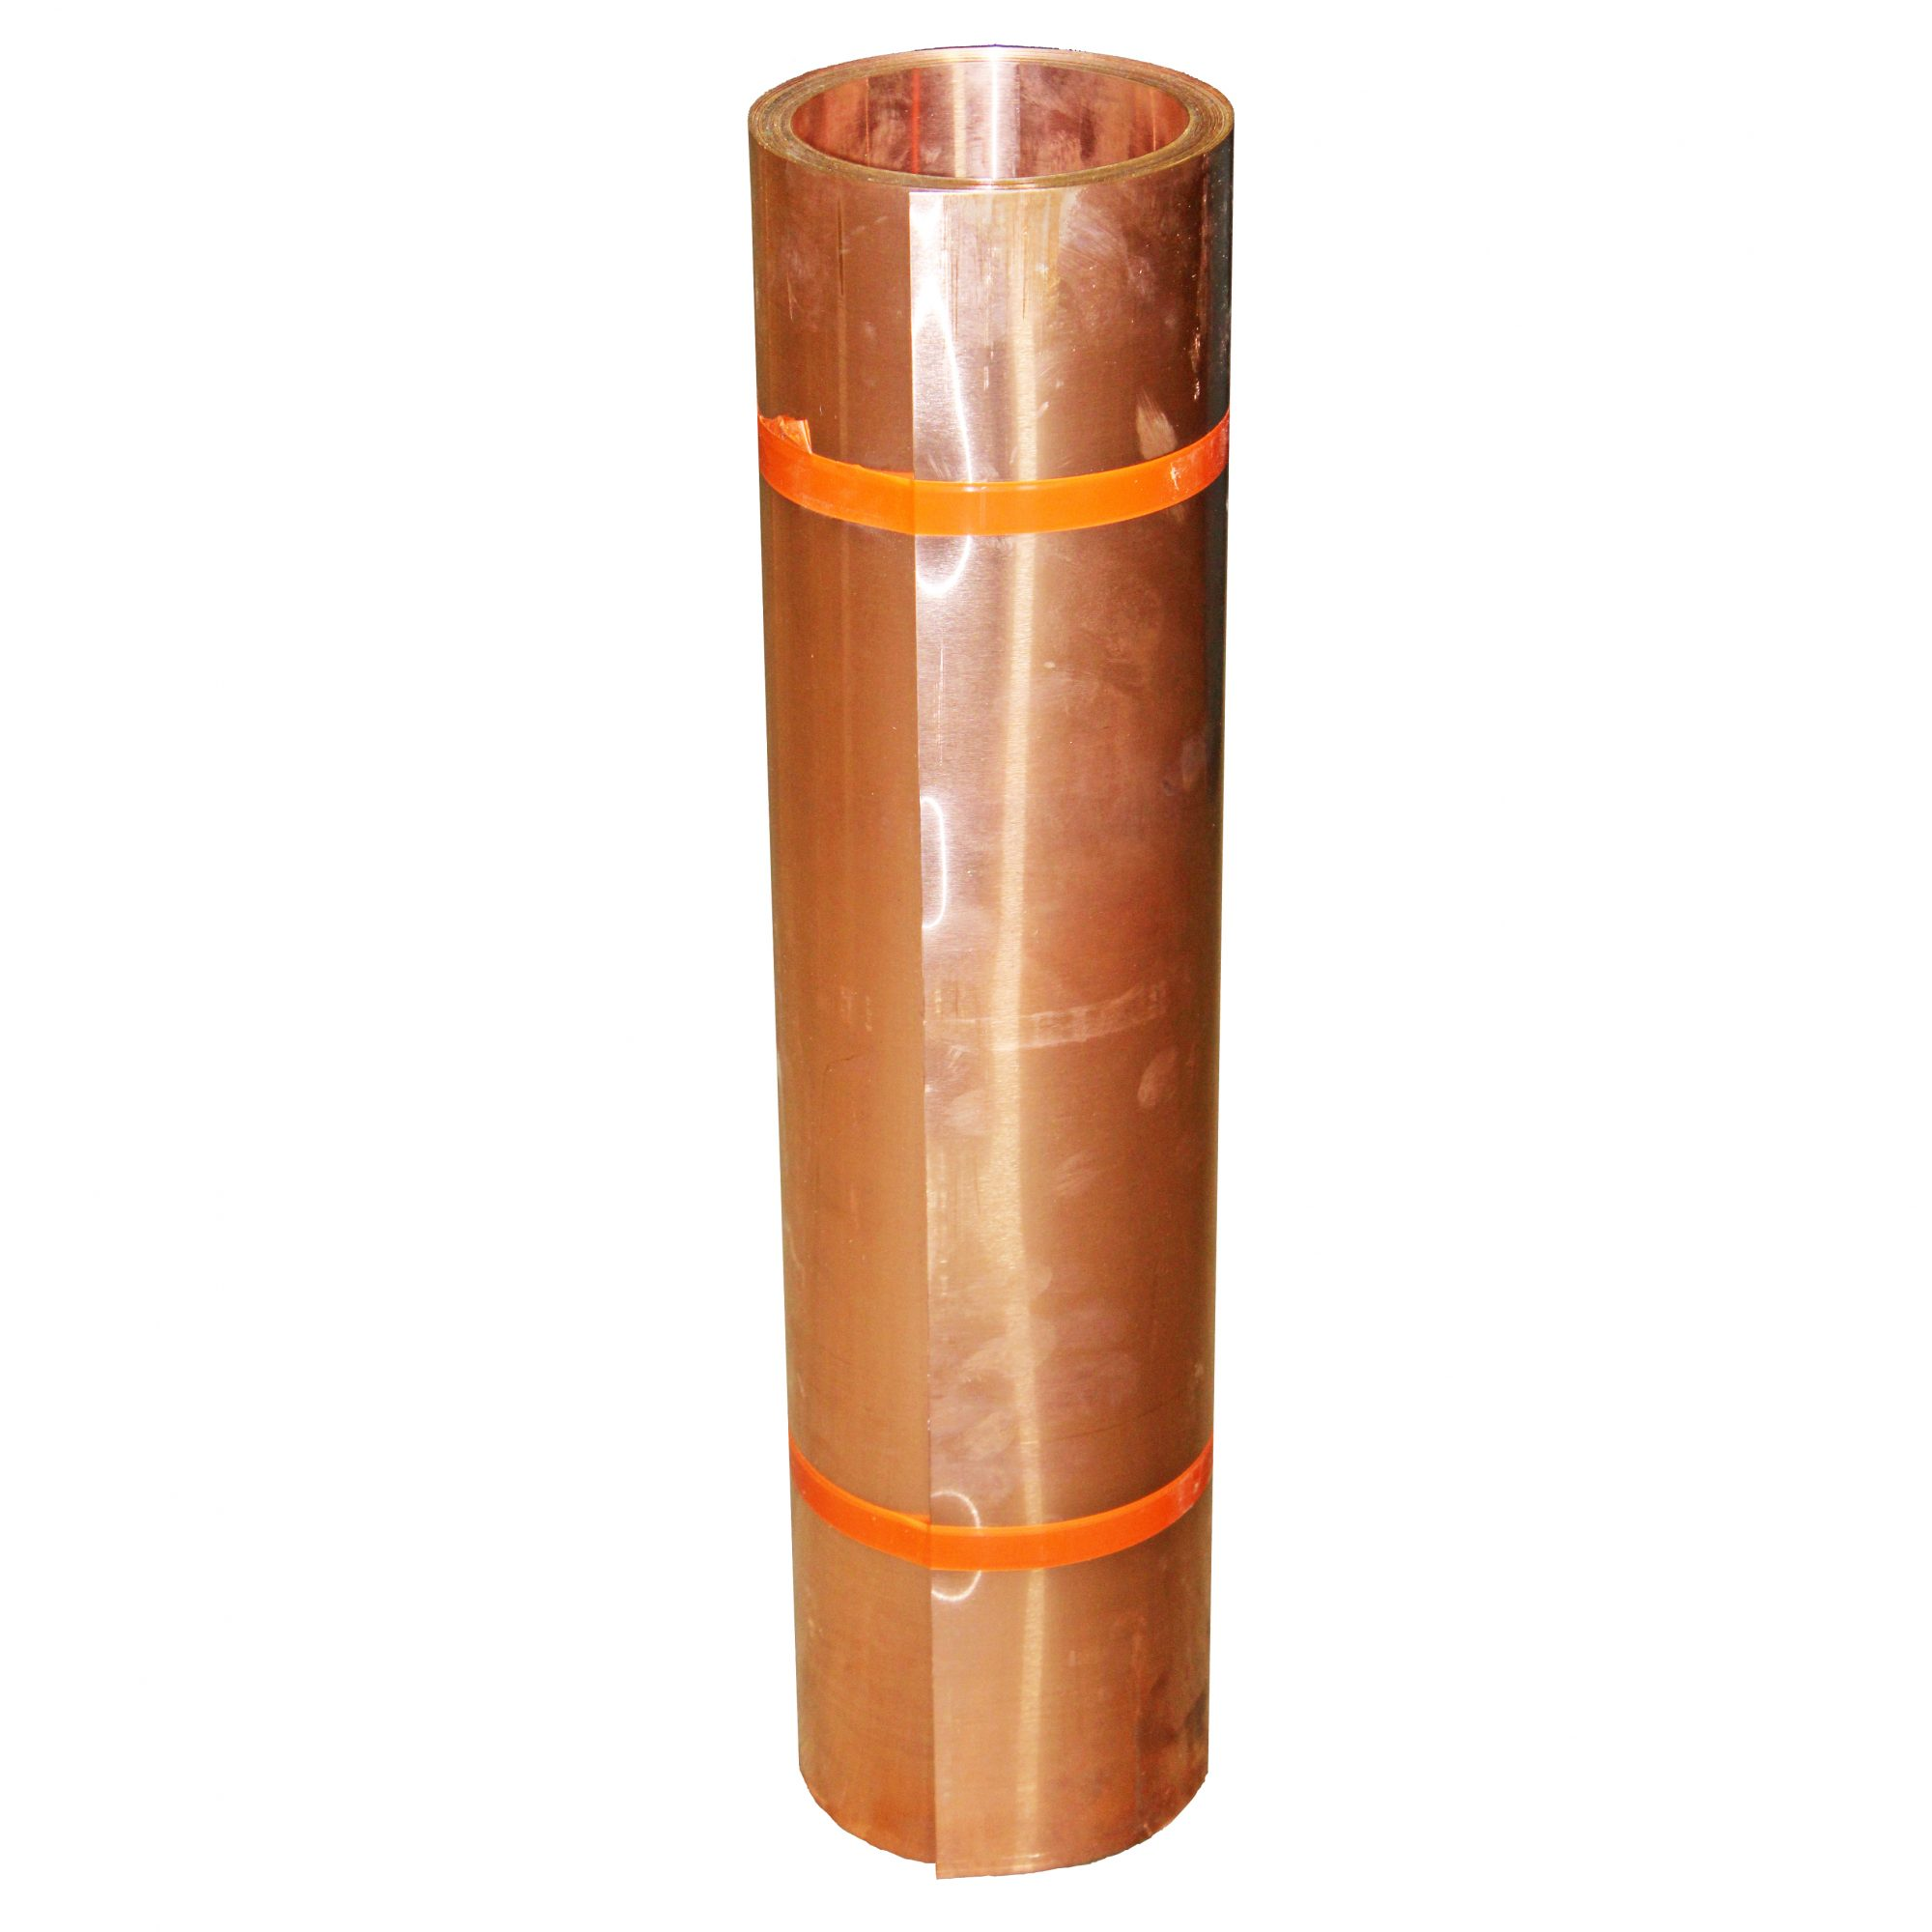 COPPER FLASHING (Approx 10′ – will vary)